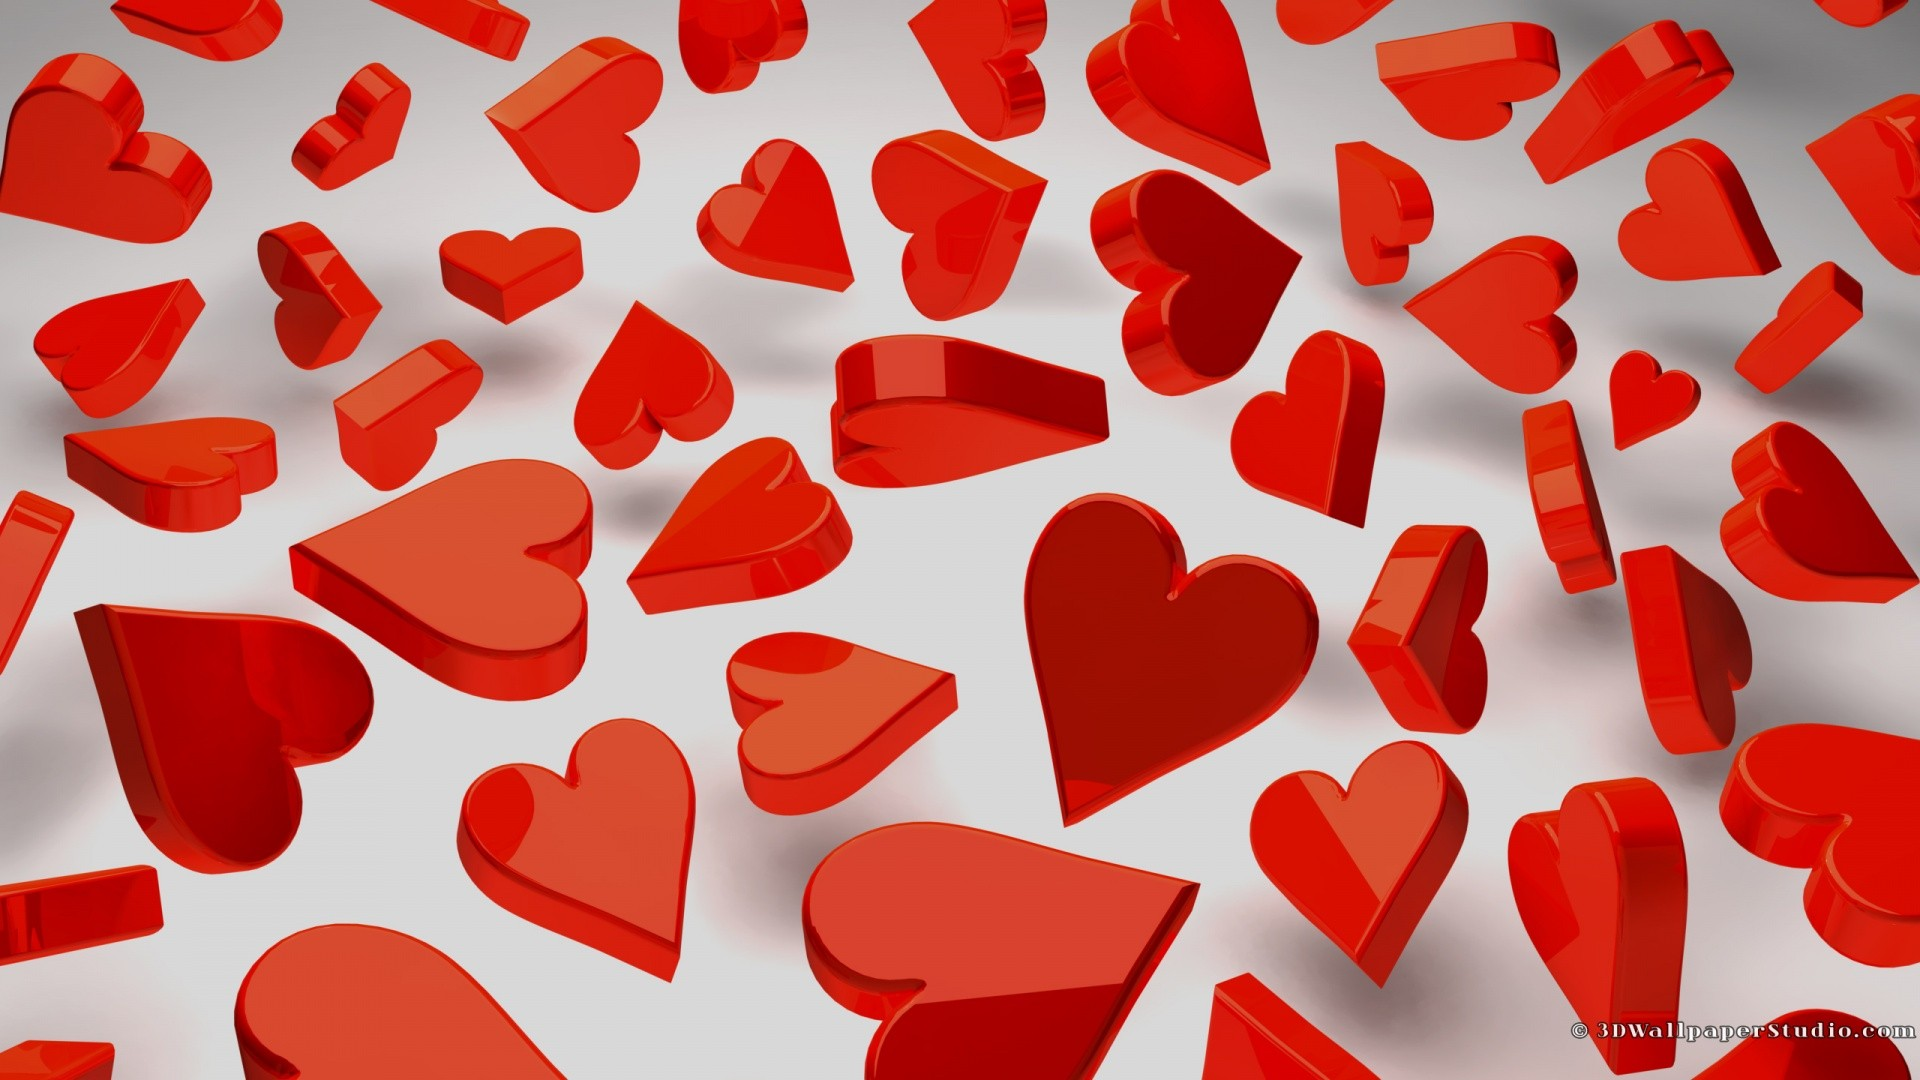 Love Red Wallpaper 1920x1080 Love Red Hearts 1920x1080